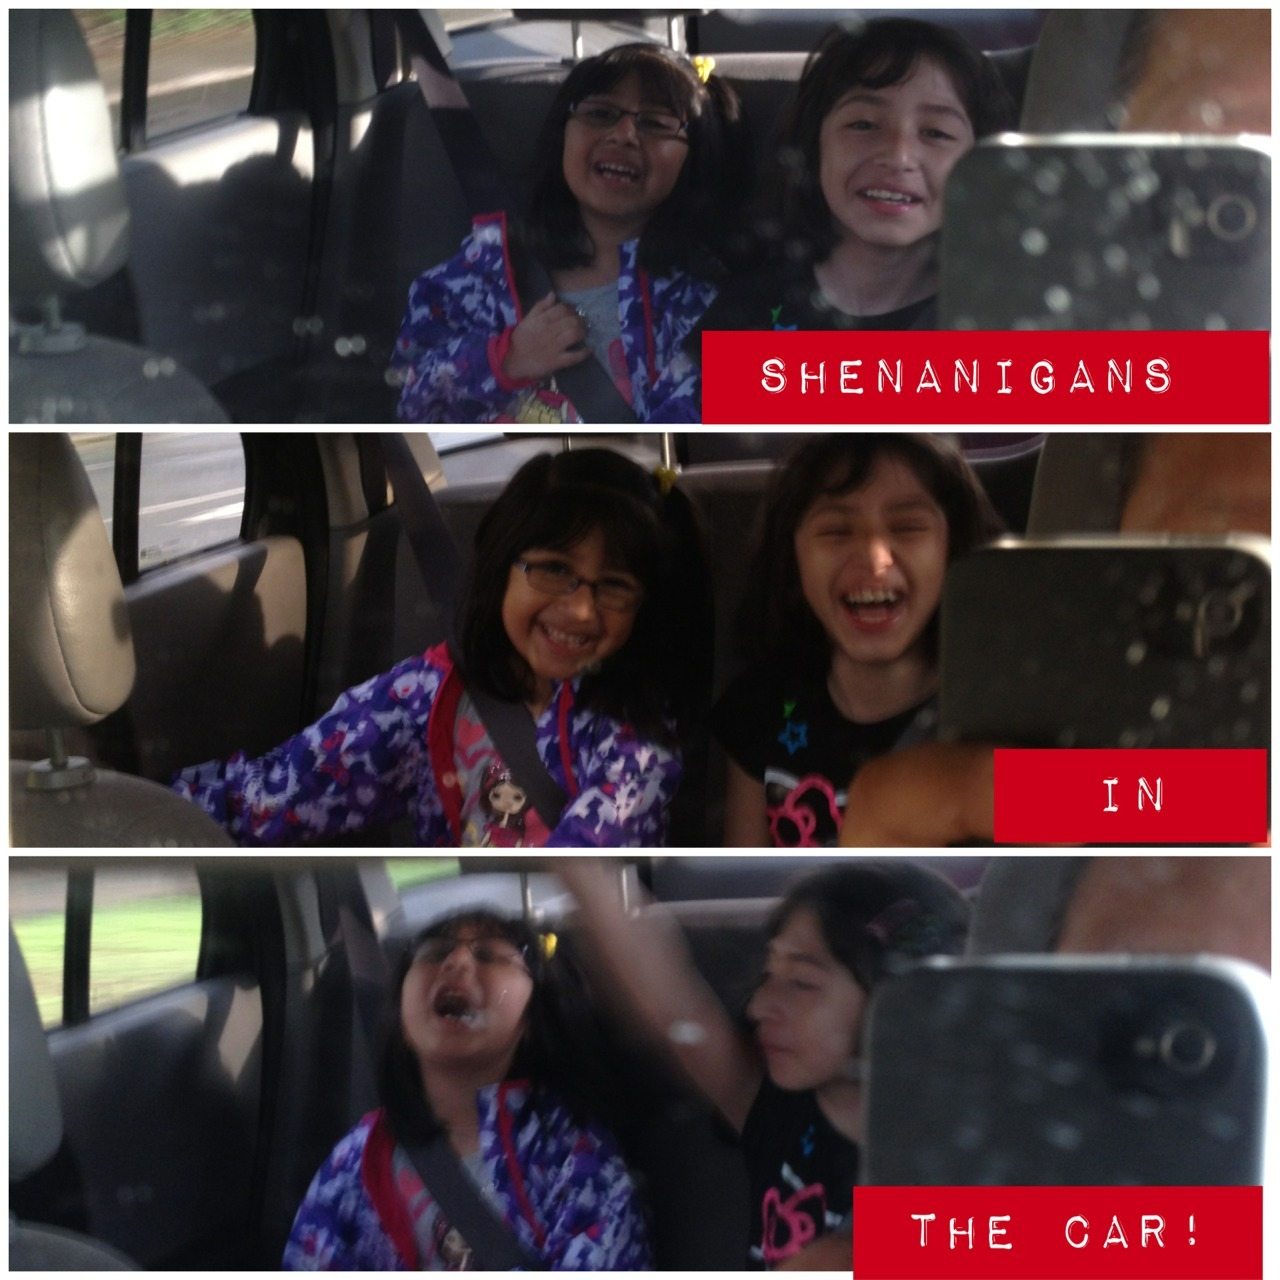 Shenanigans in the car. How young #strongmujeres get down. ;) #onmyfamilygrind